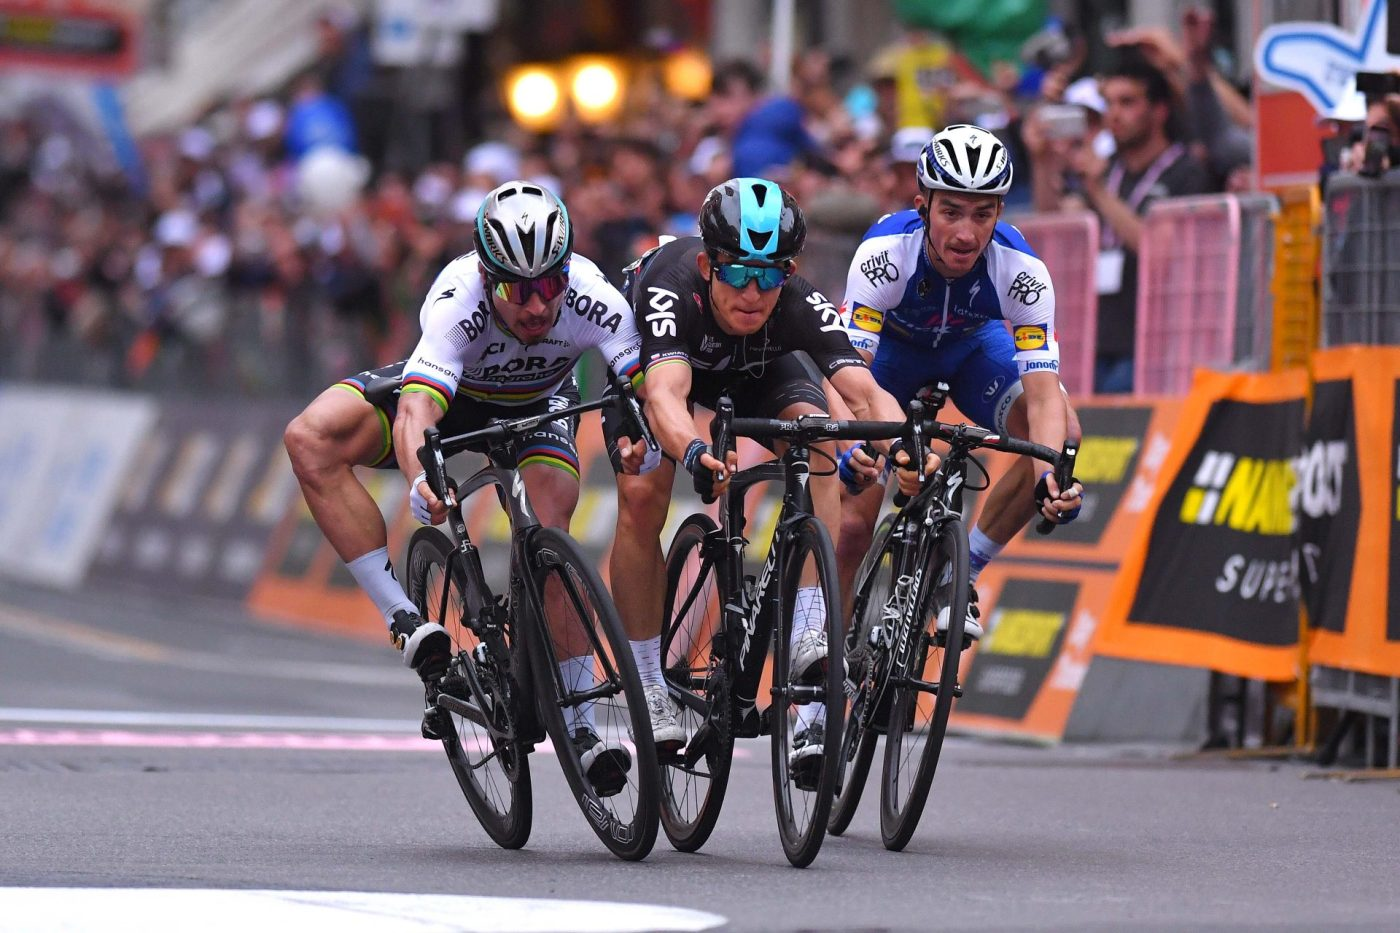 2019 Milan-San Remo Guide: The Longest Race of the Year 3